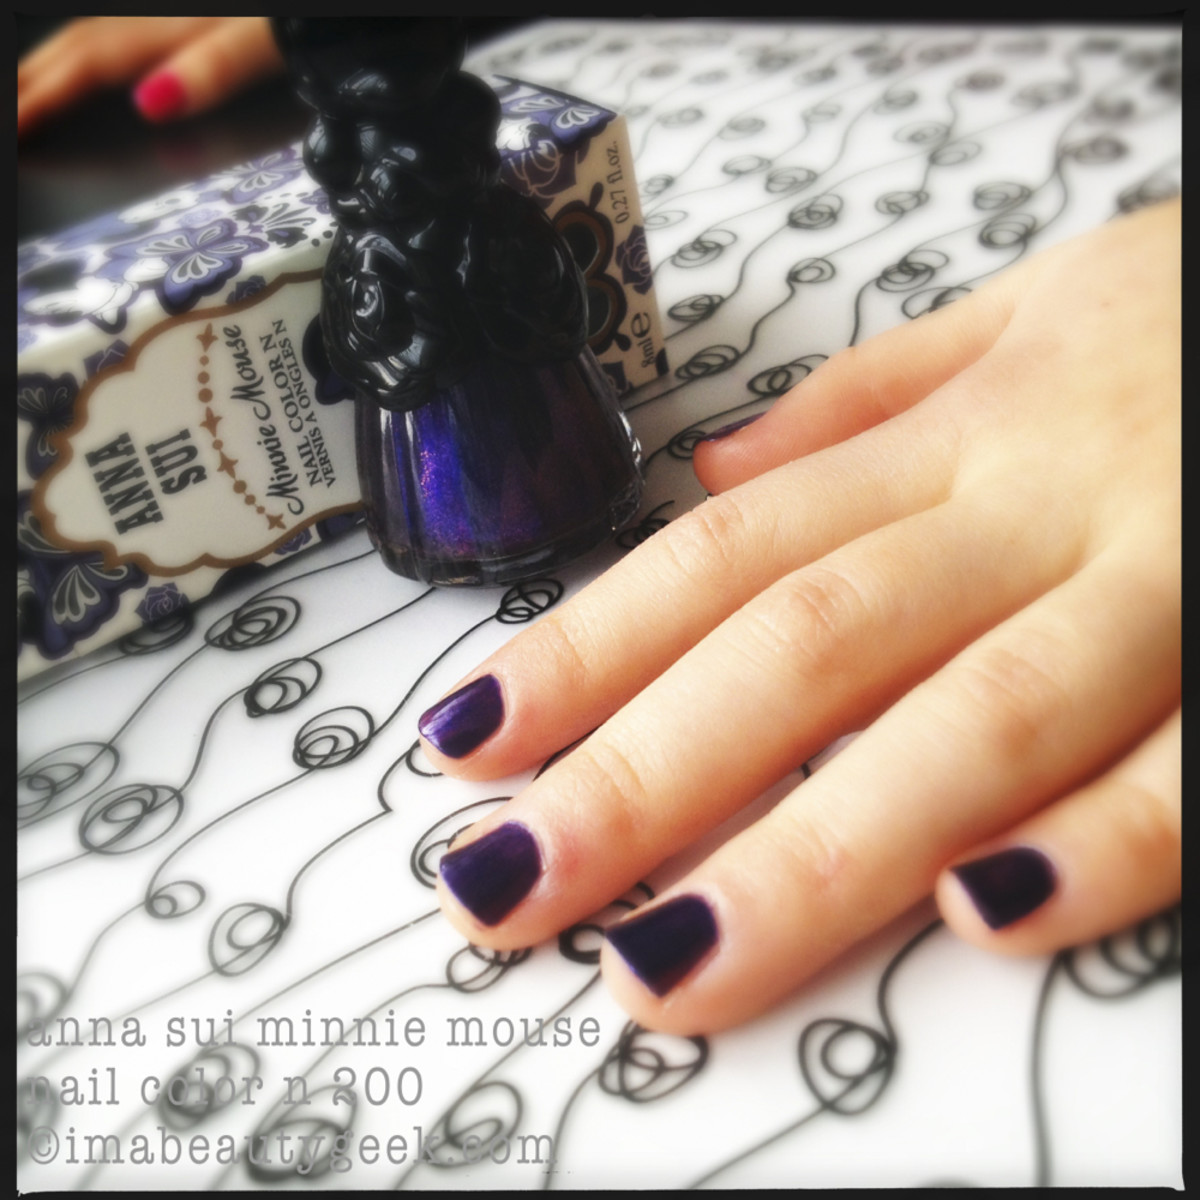 Anna Sui Minnie Mouse nail polish and little fingers